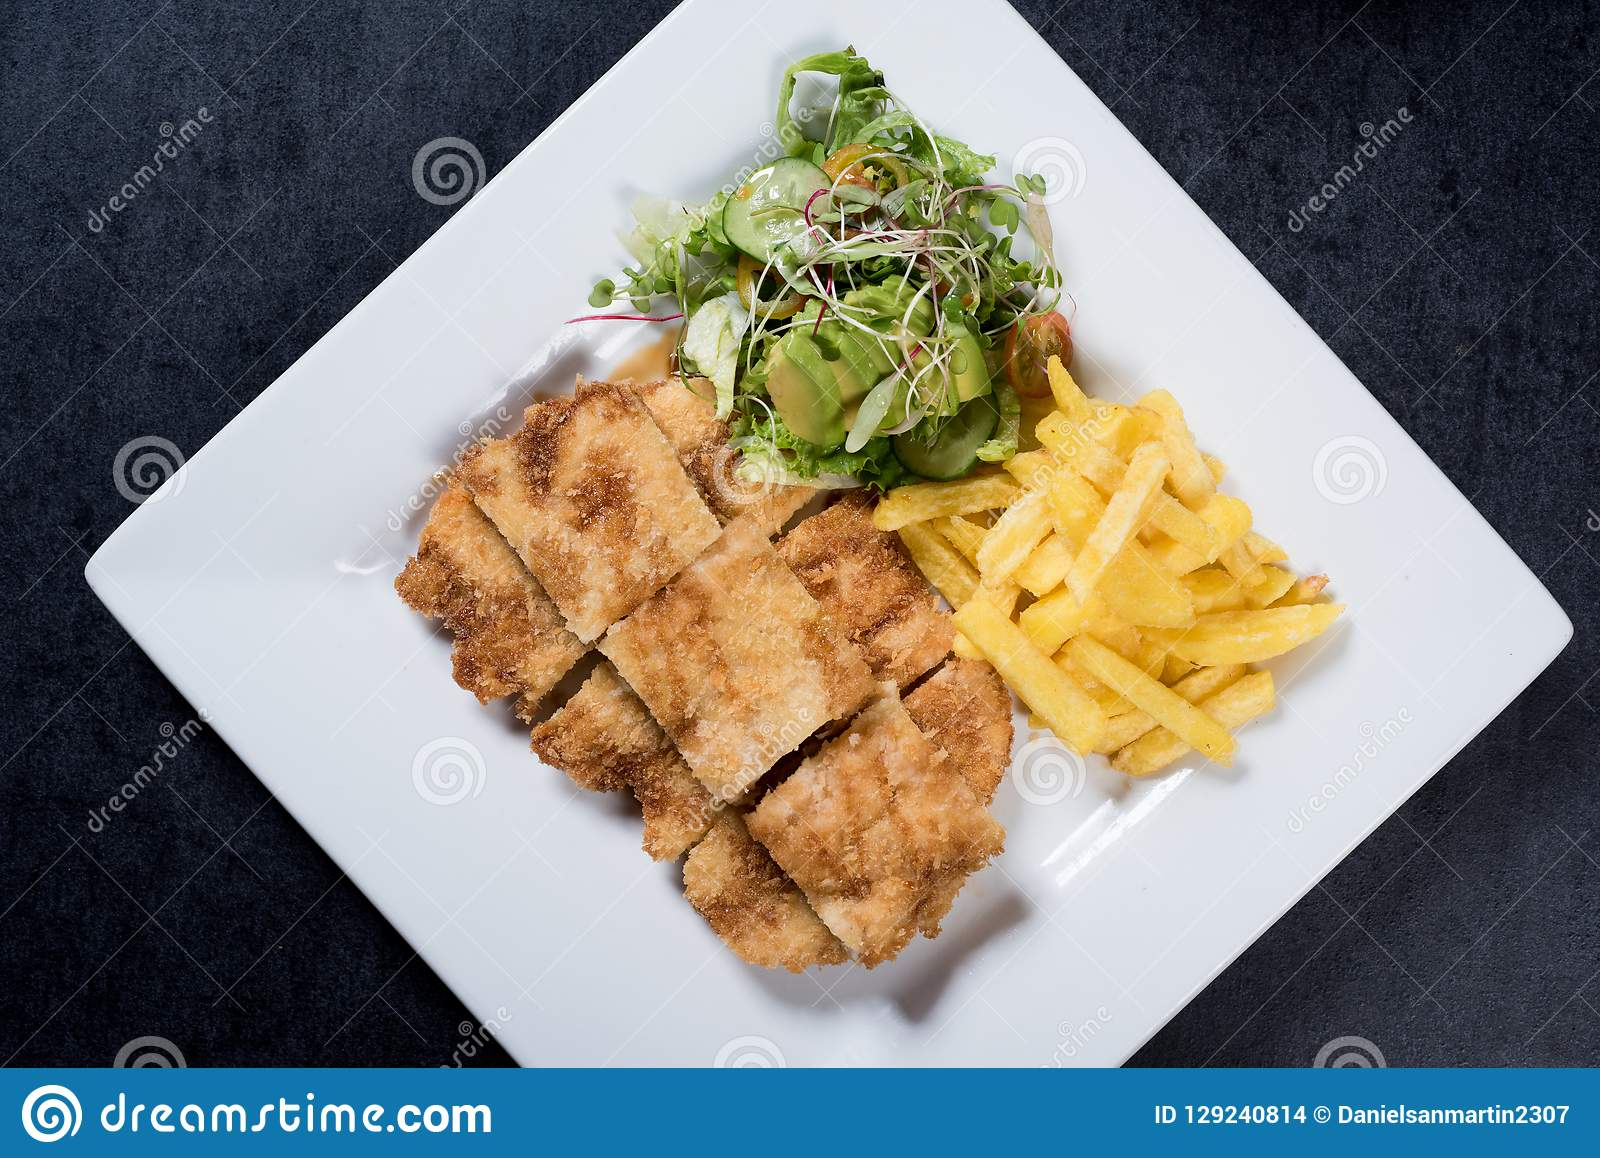 1 081 Chicken Schnitzel Chips Salad Photos Free Royalty Free Stock Photos From Dreamstime